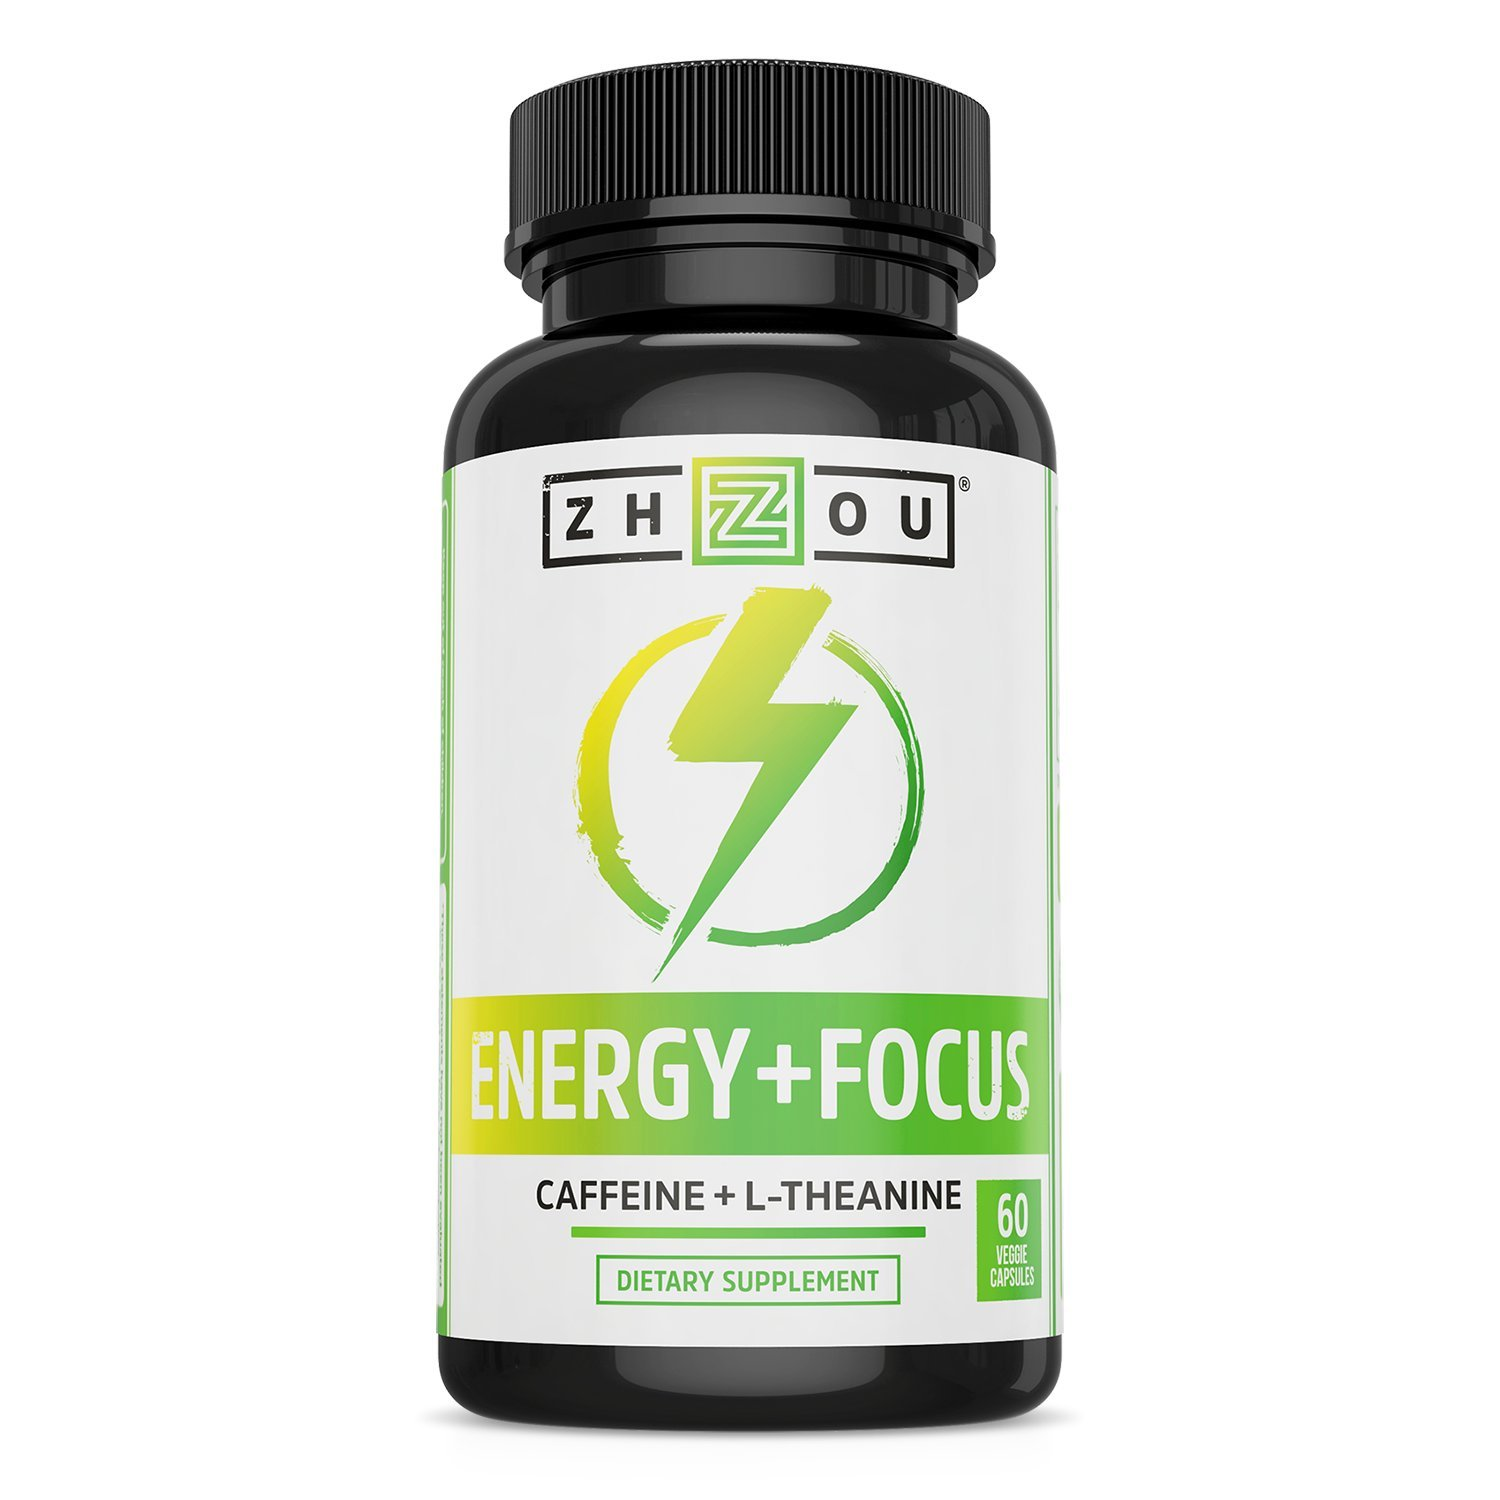 Caffeine with L-Theanine for Smooth Energy & Focus - Focused Energy for Your Mind & Body - No Crash ▫ No Jitters - #1 Nootropic Stack for Cognitive Performance - Veggie Capsules by Zhou Nutrition